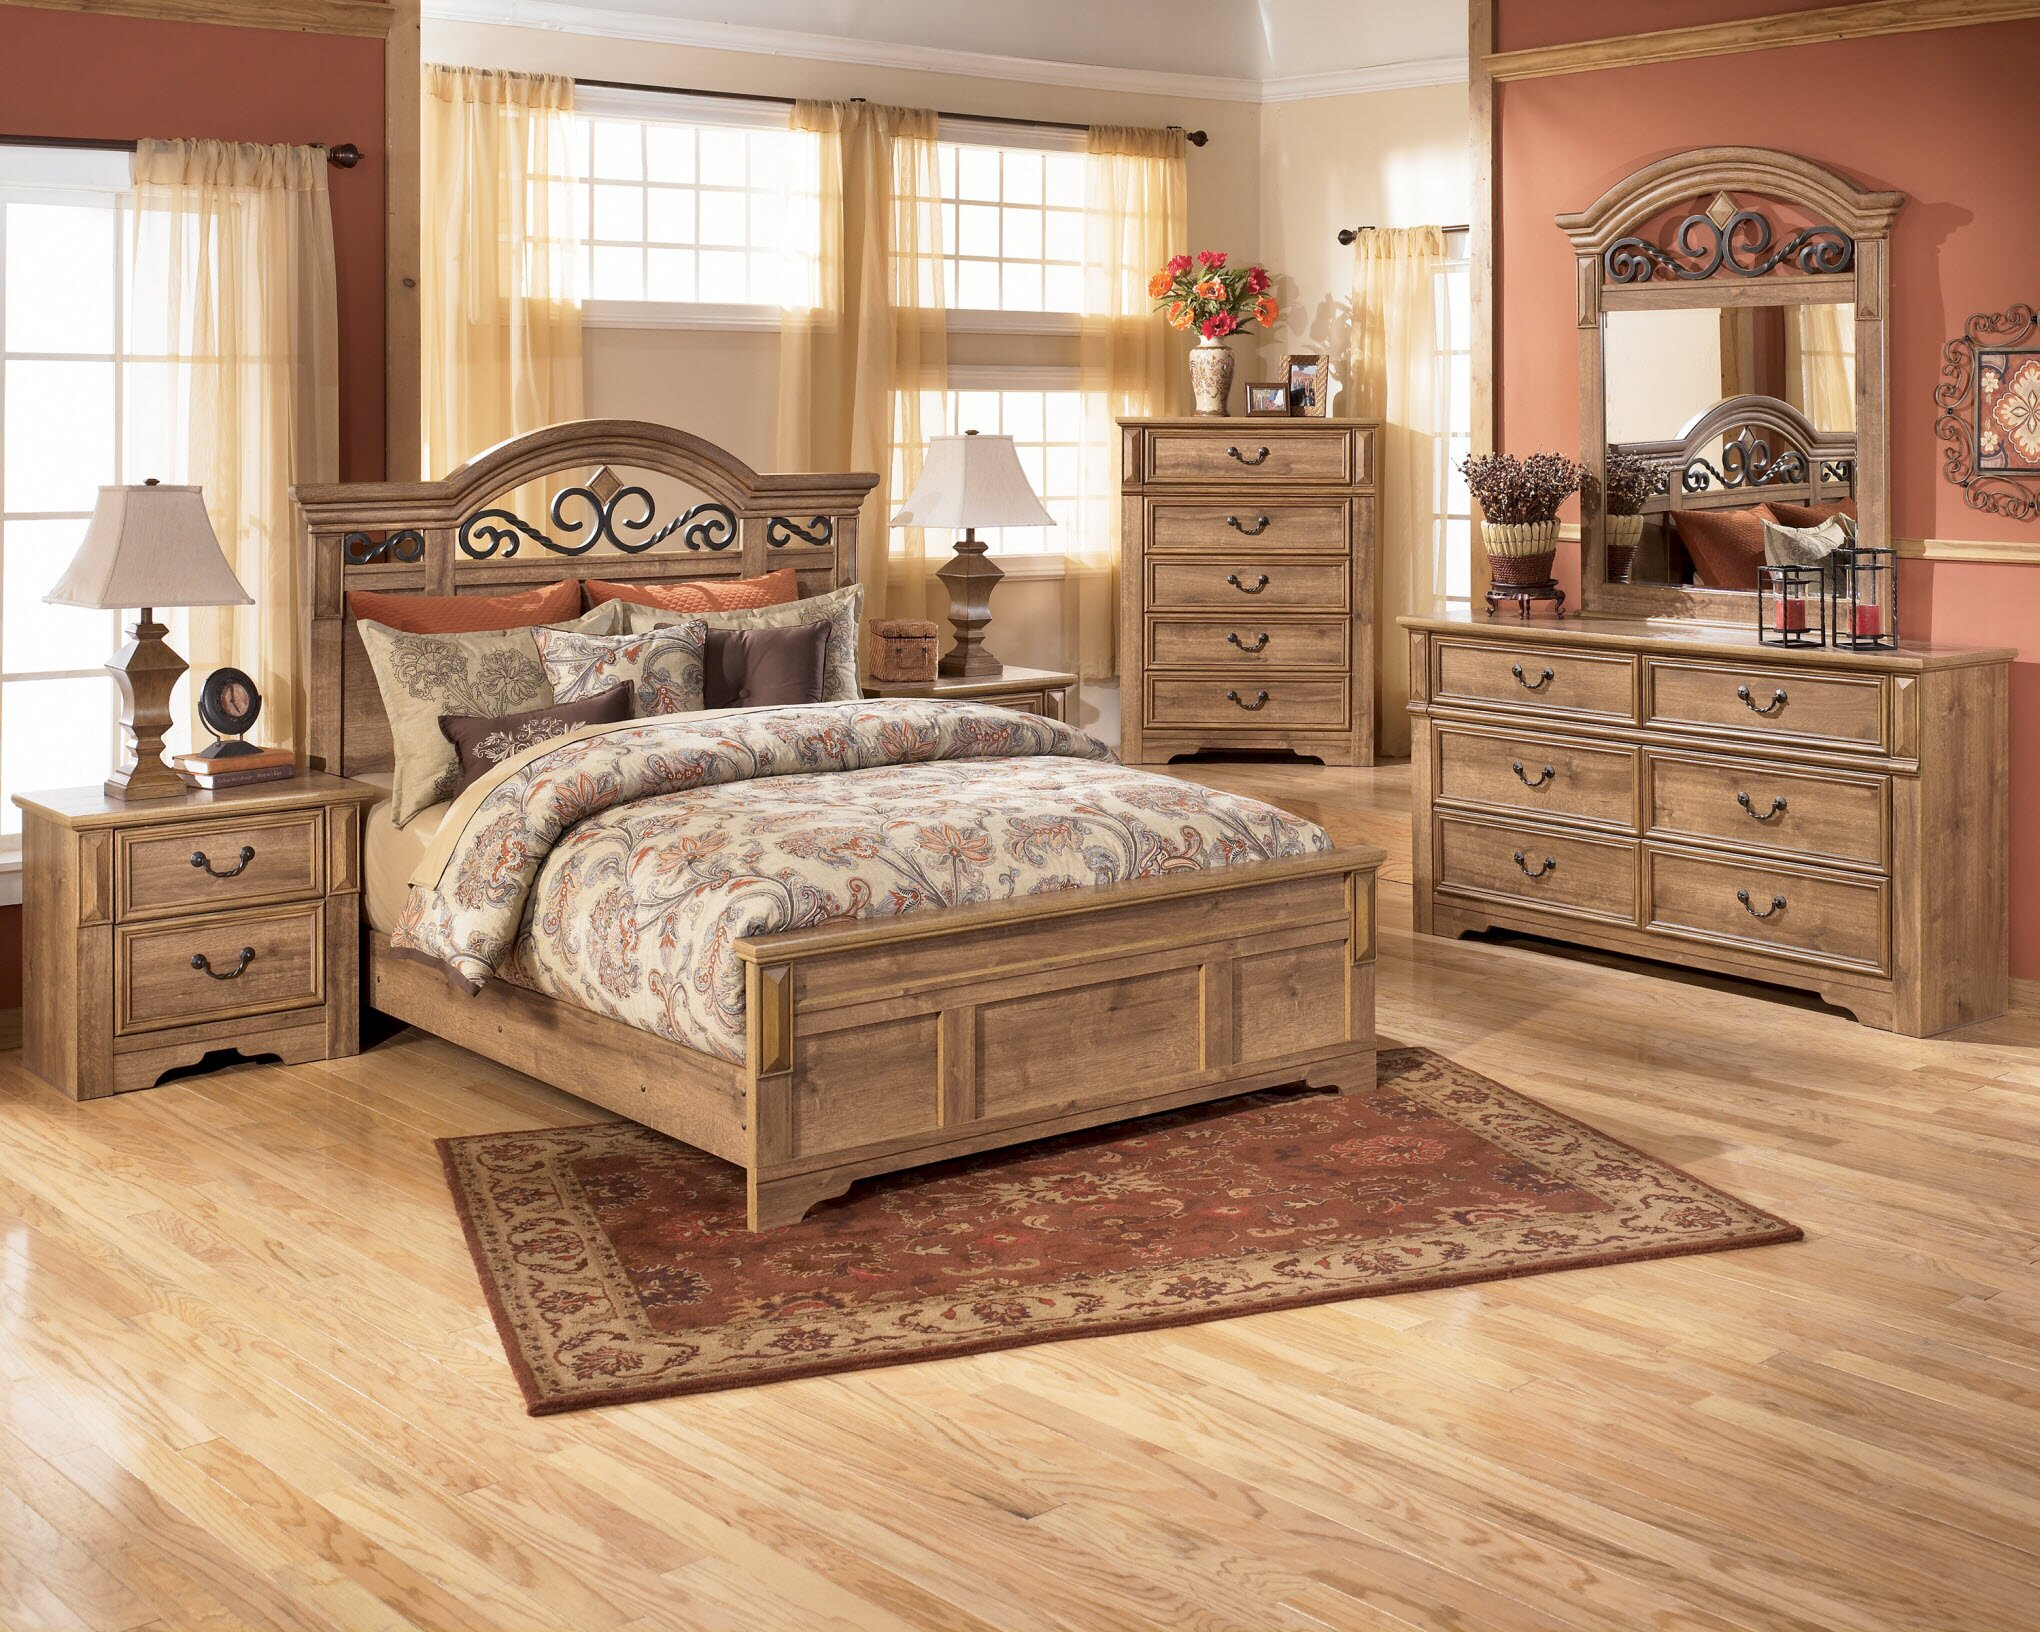 Bedroom craigslist bedroom sets for elegant bedroom for Bedroom furniture designs for 10x10 room